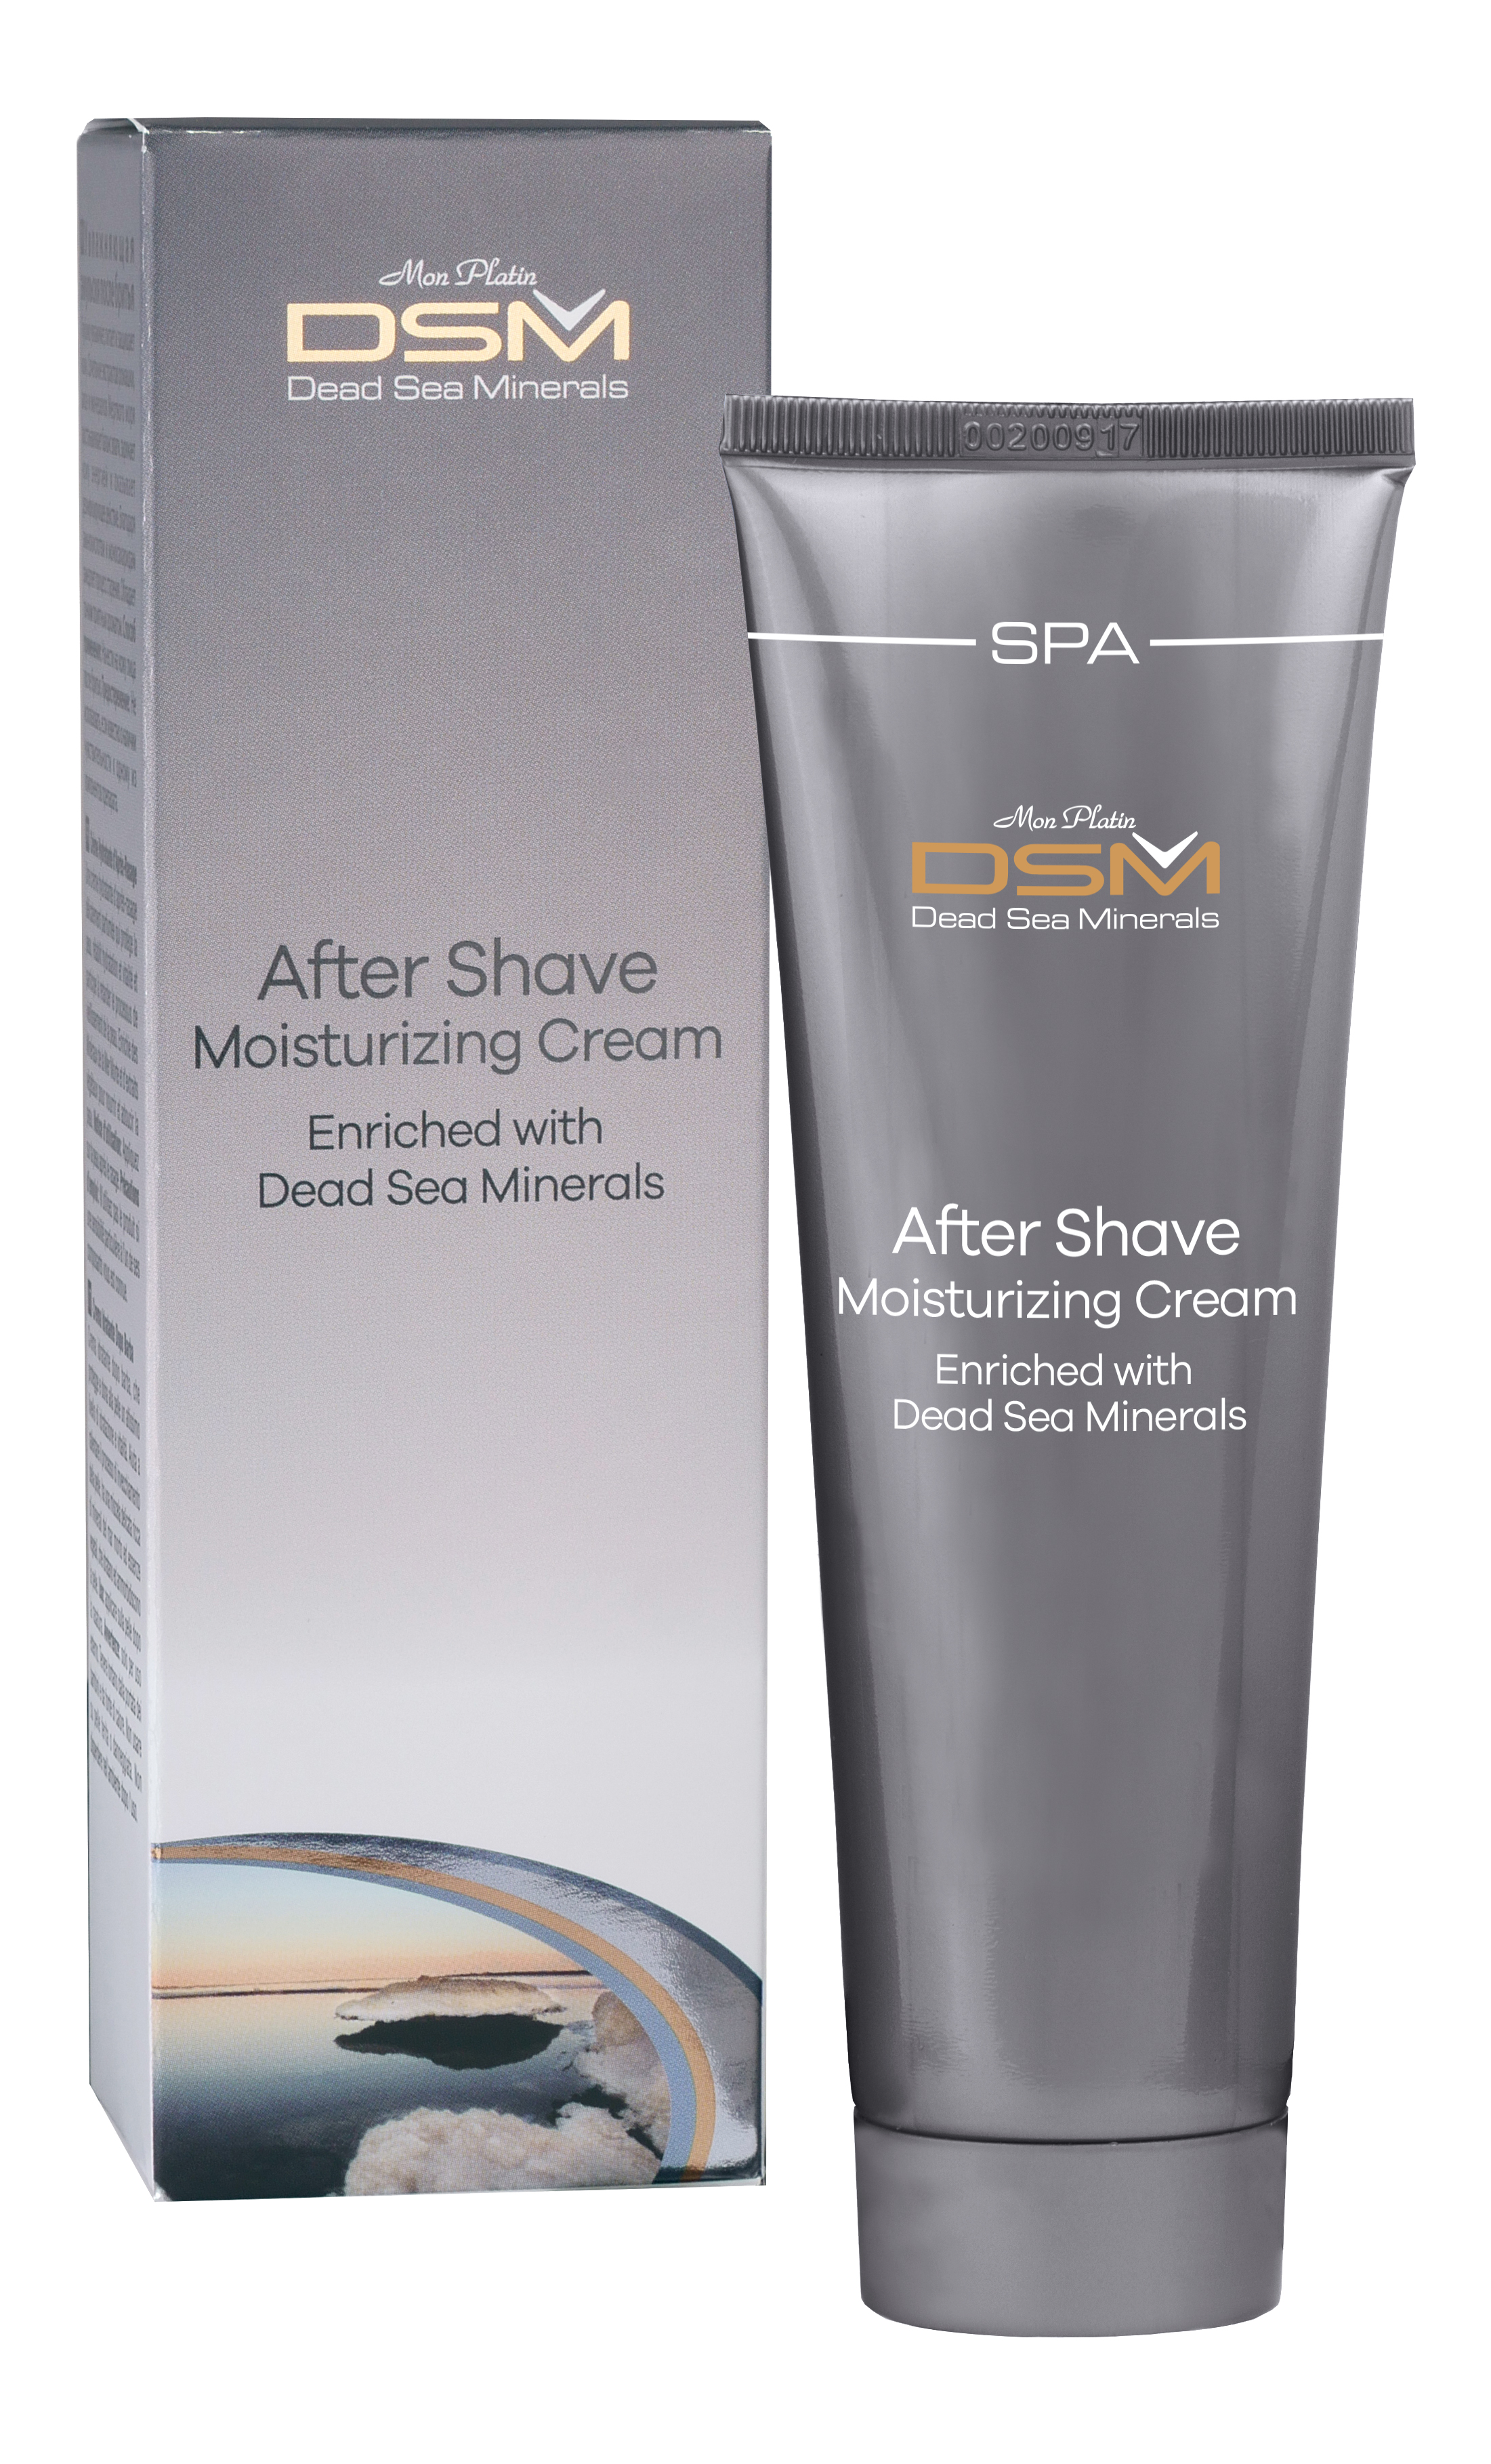 After shave moisturizing cream